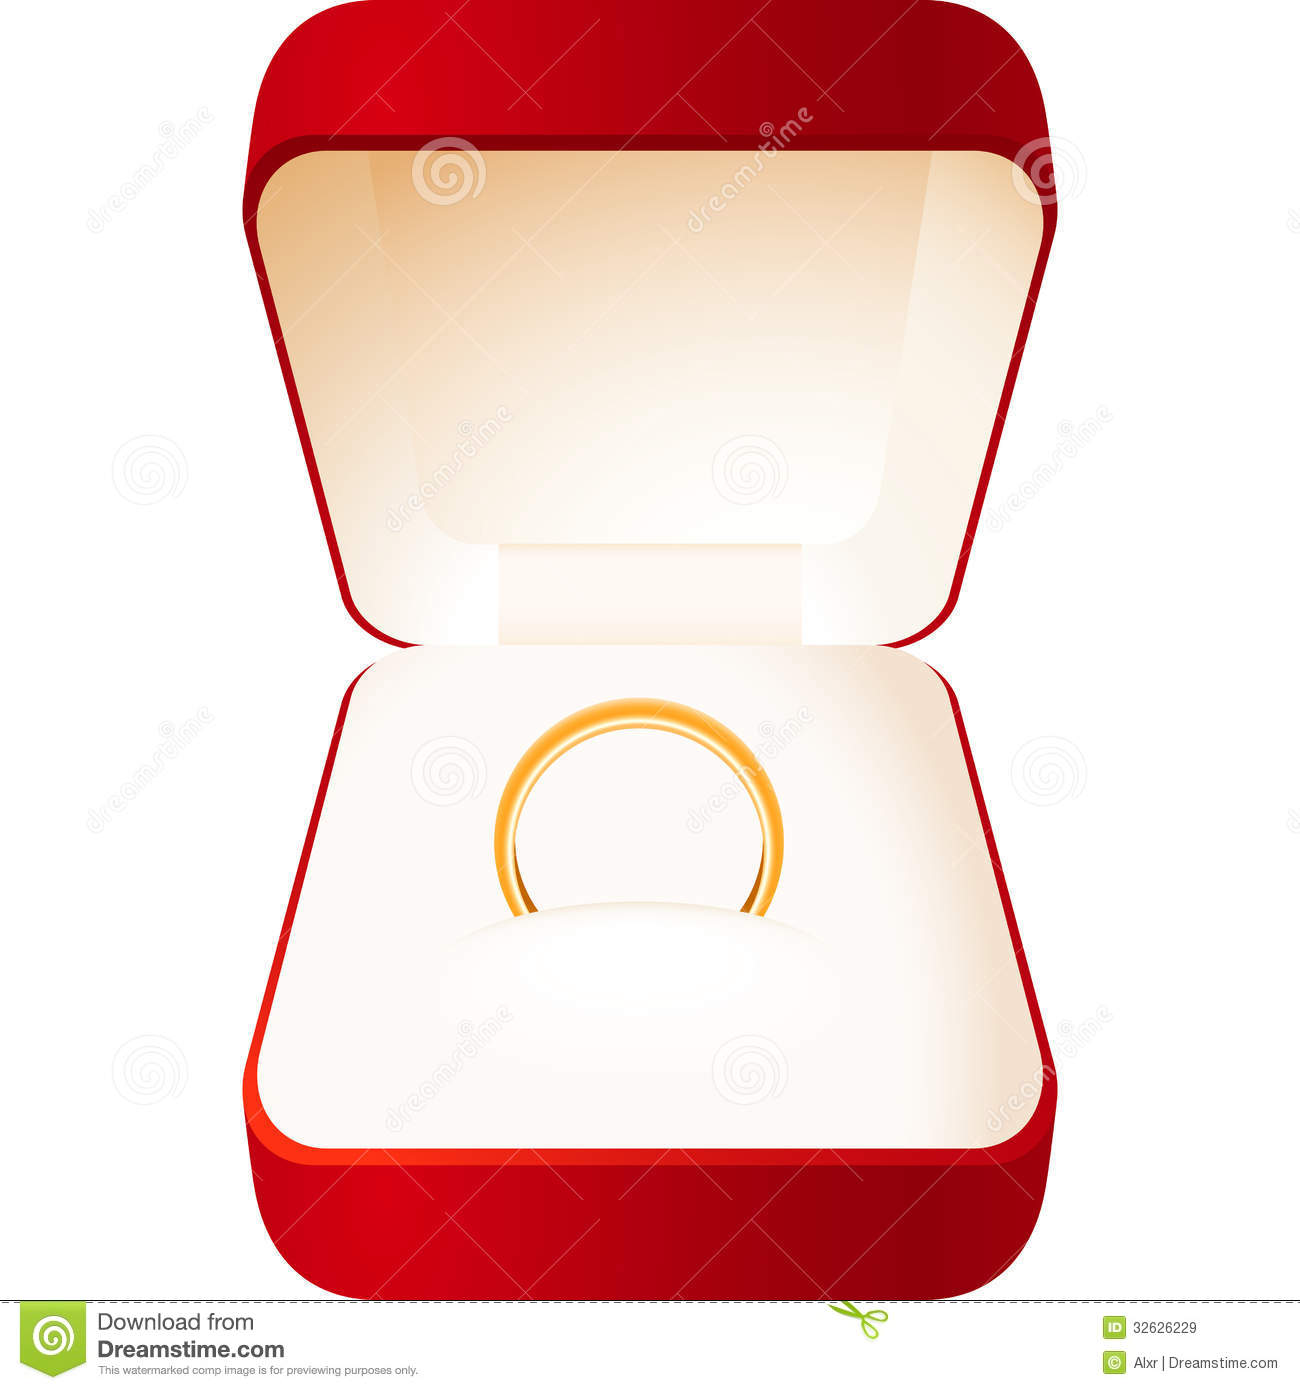 Engagement Ring Clipart At Getdrawings Com Free For Personal Use